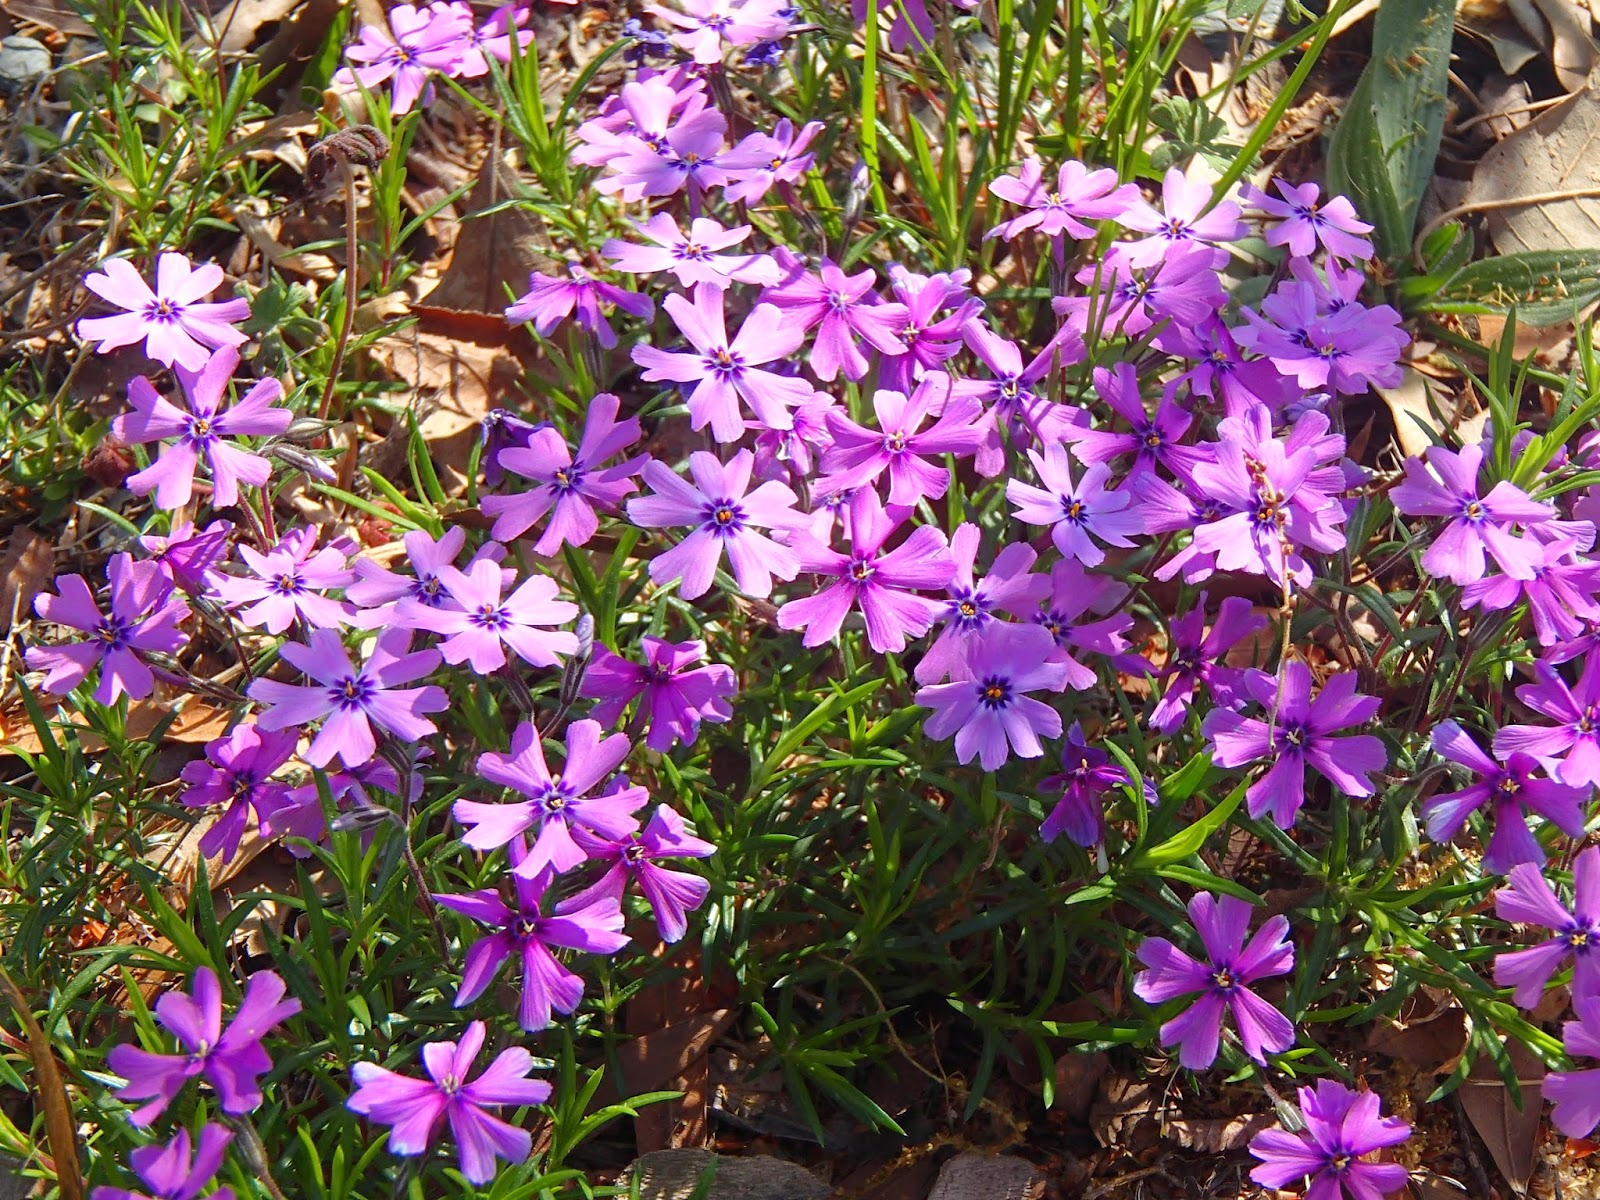 Purple Phlox | Navigating Hectivity by Micki Bare